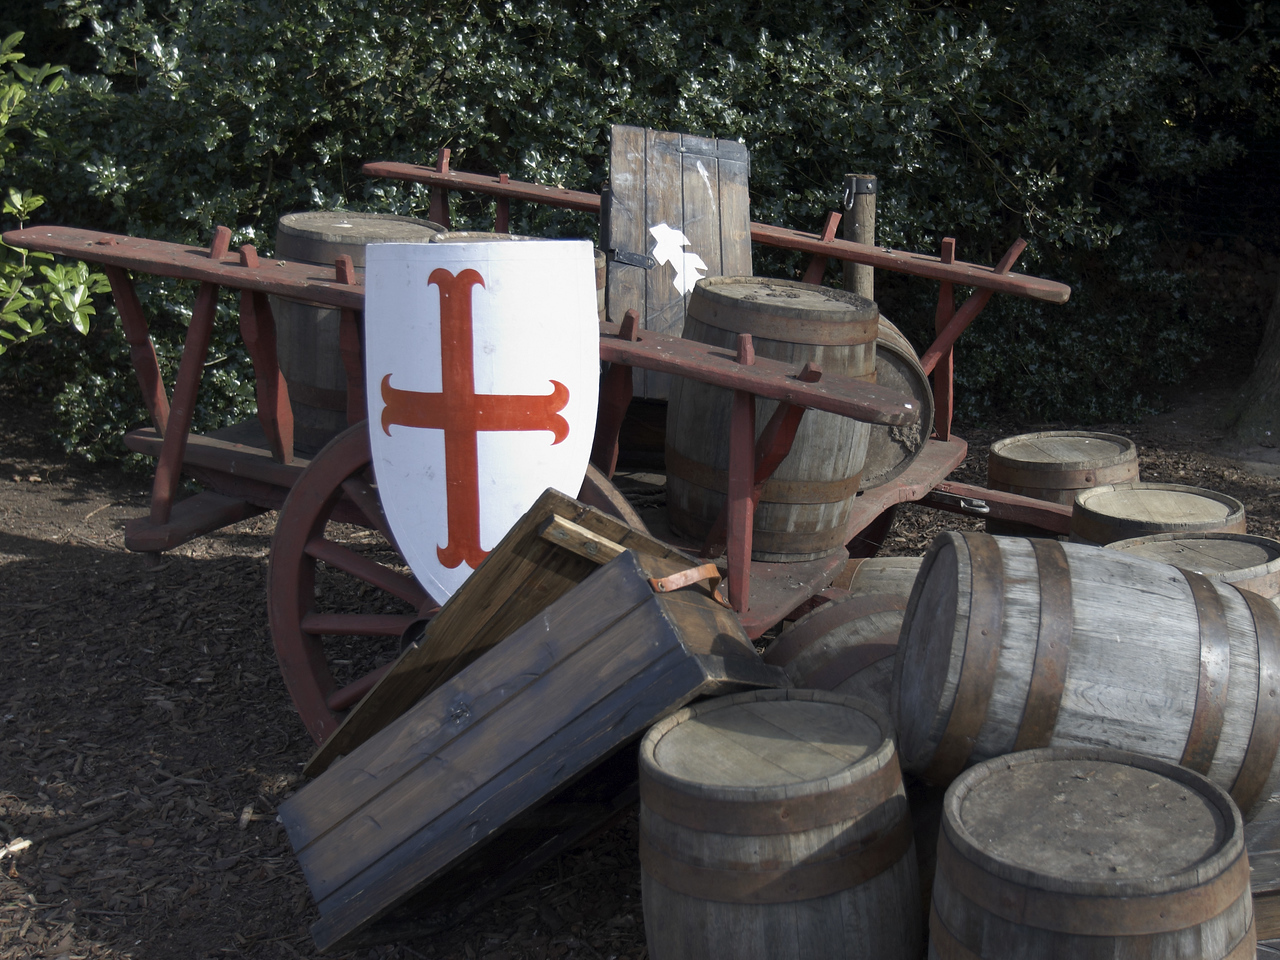 Yipes! It would appear that our cart full of goodies has been ransacked by vandals!  Note the cross of England and the Warwick emblem (the thing that vaguely looks like the stock of an arrow) on the shields.